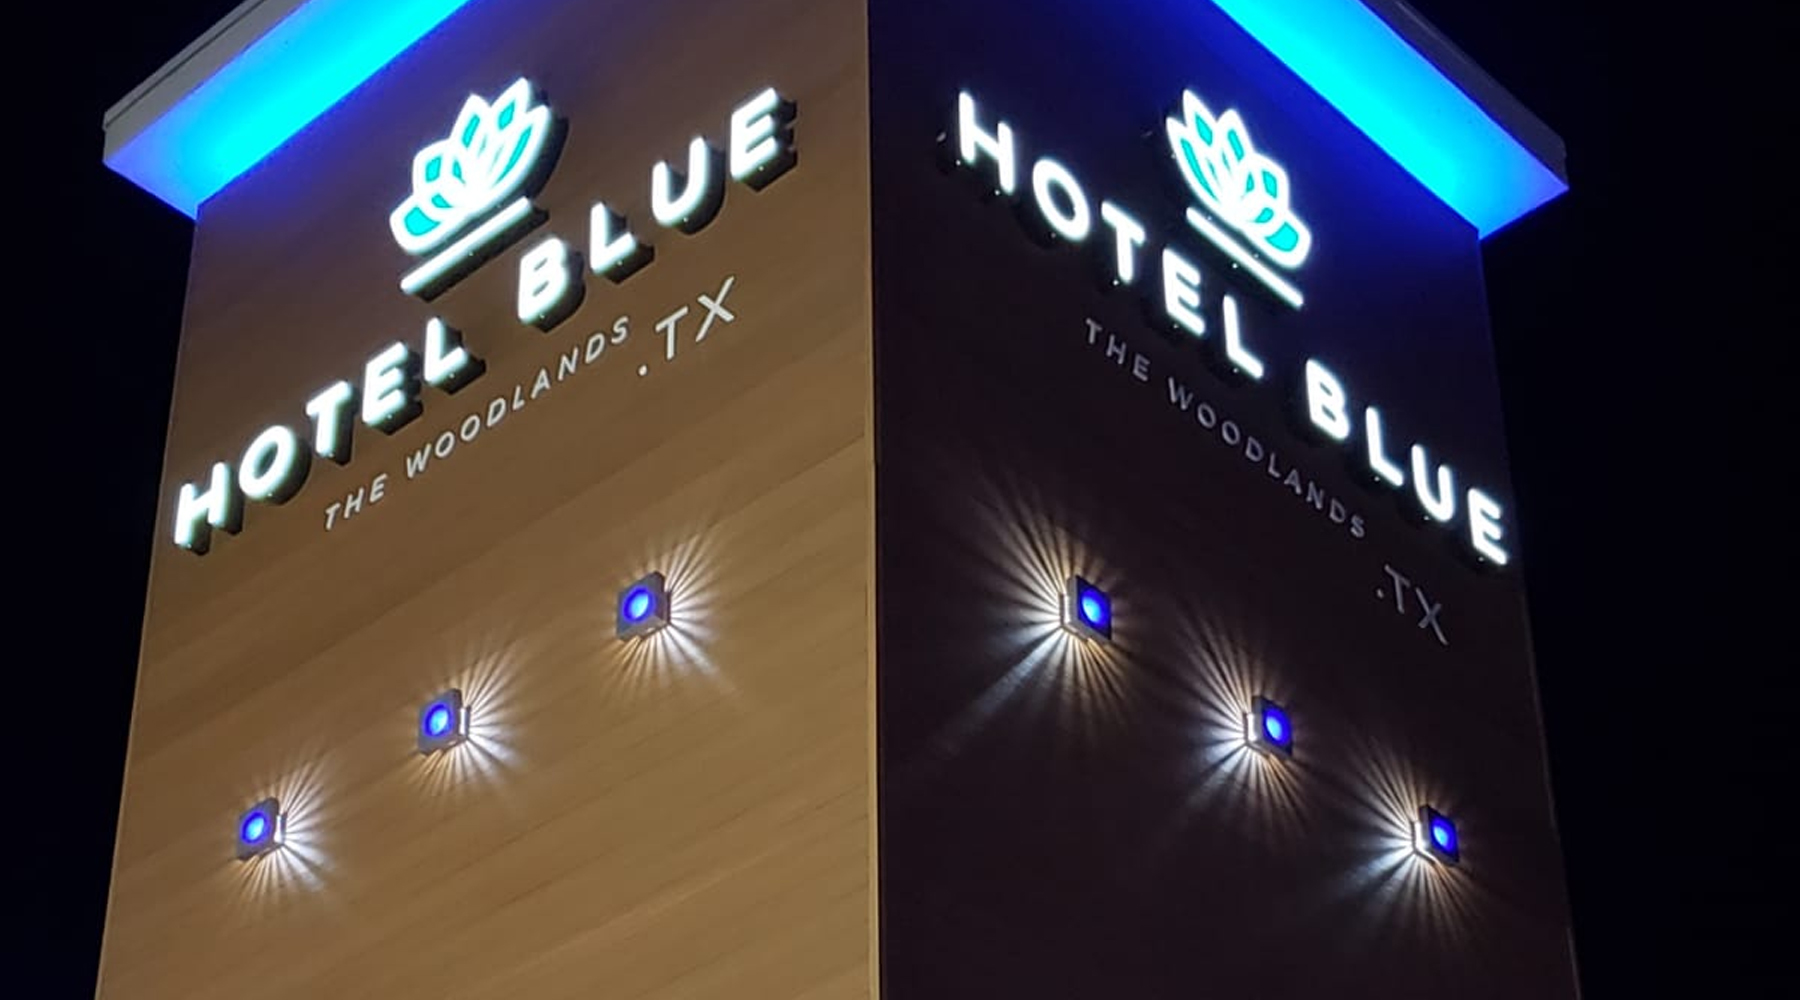 Hotel Blue Woodlands